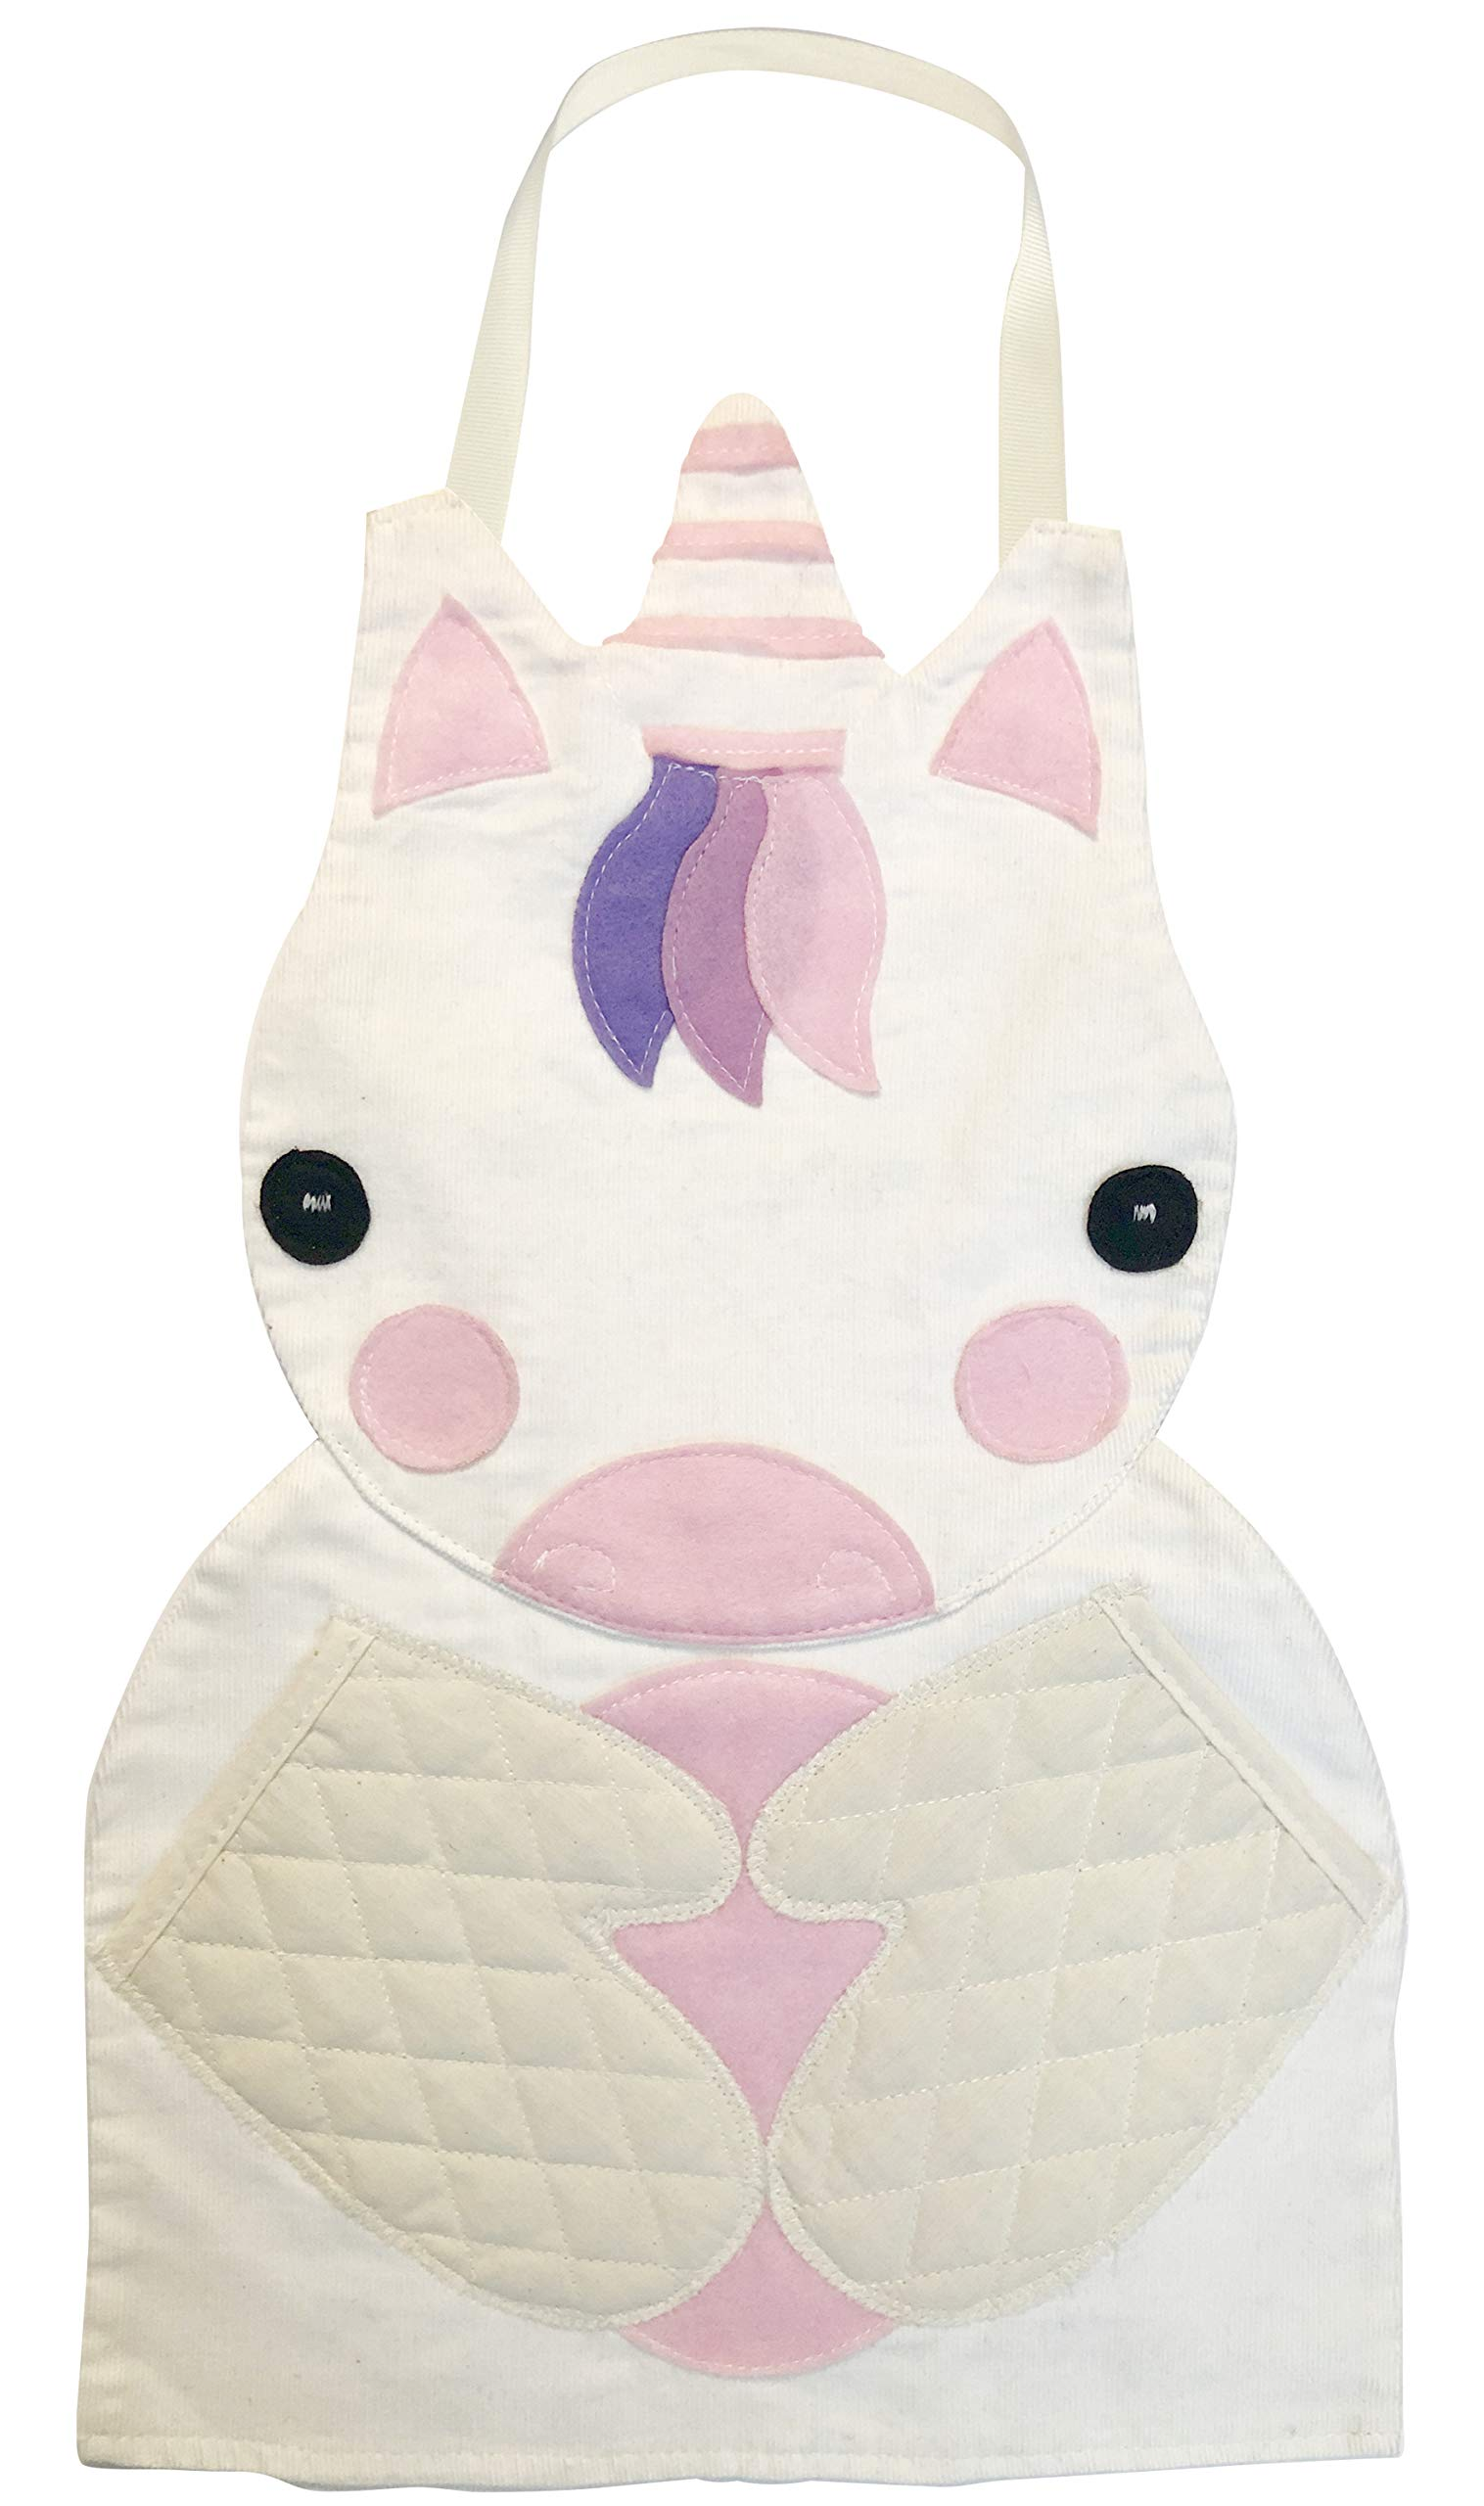 Hapinest Pretend Play Make and Bake Kids Apron for Girls, Unicorn by Hapinest